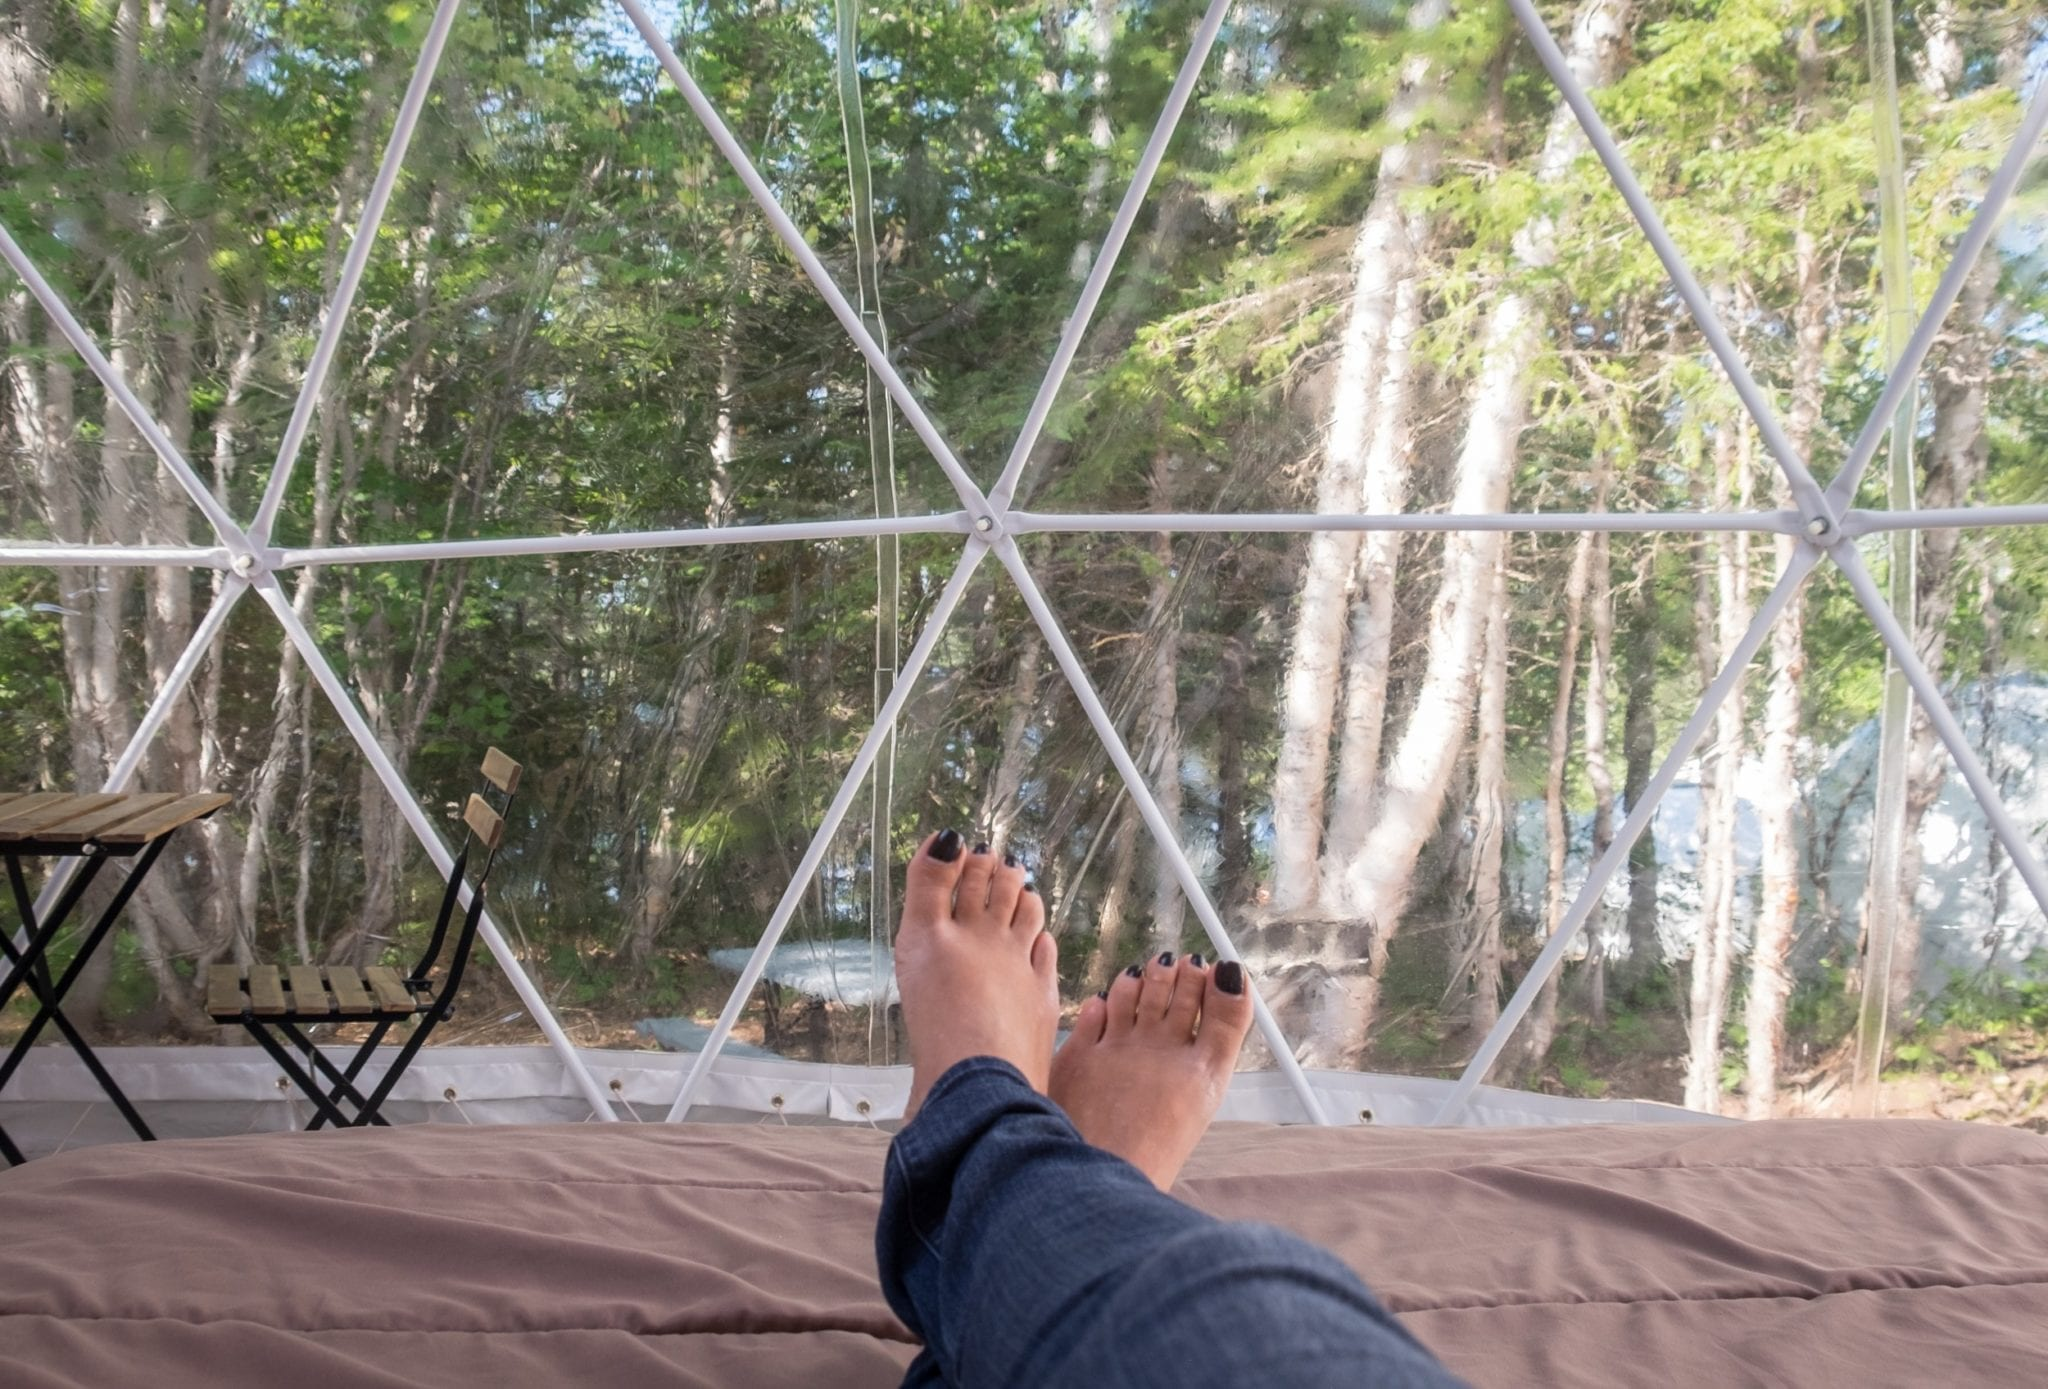 Kate's feet leaning off a bed in the Blue Bayou Geodesic Domes with the windows behind her feet and trees behind them.